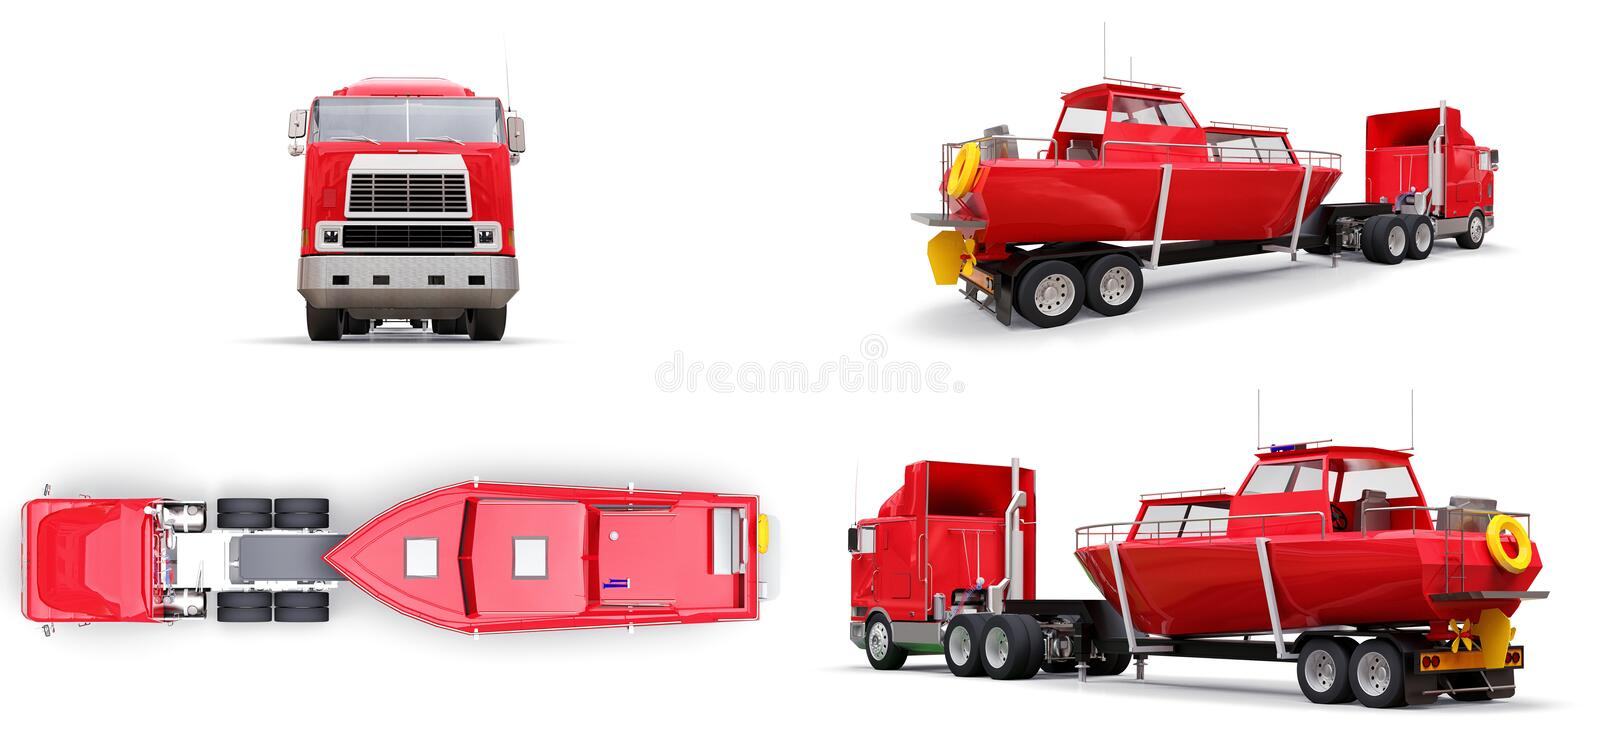 Set big red truck with a trailer for transporting a boat on a white background. 3d rendering. stock illustration